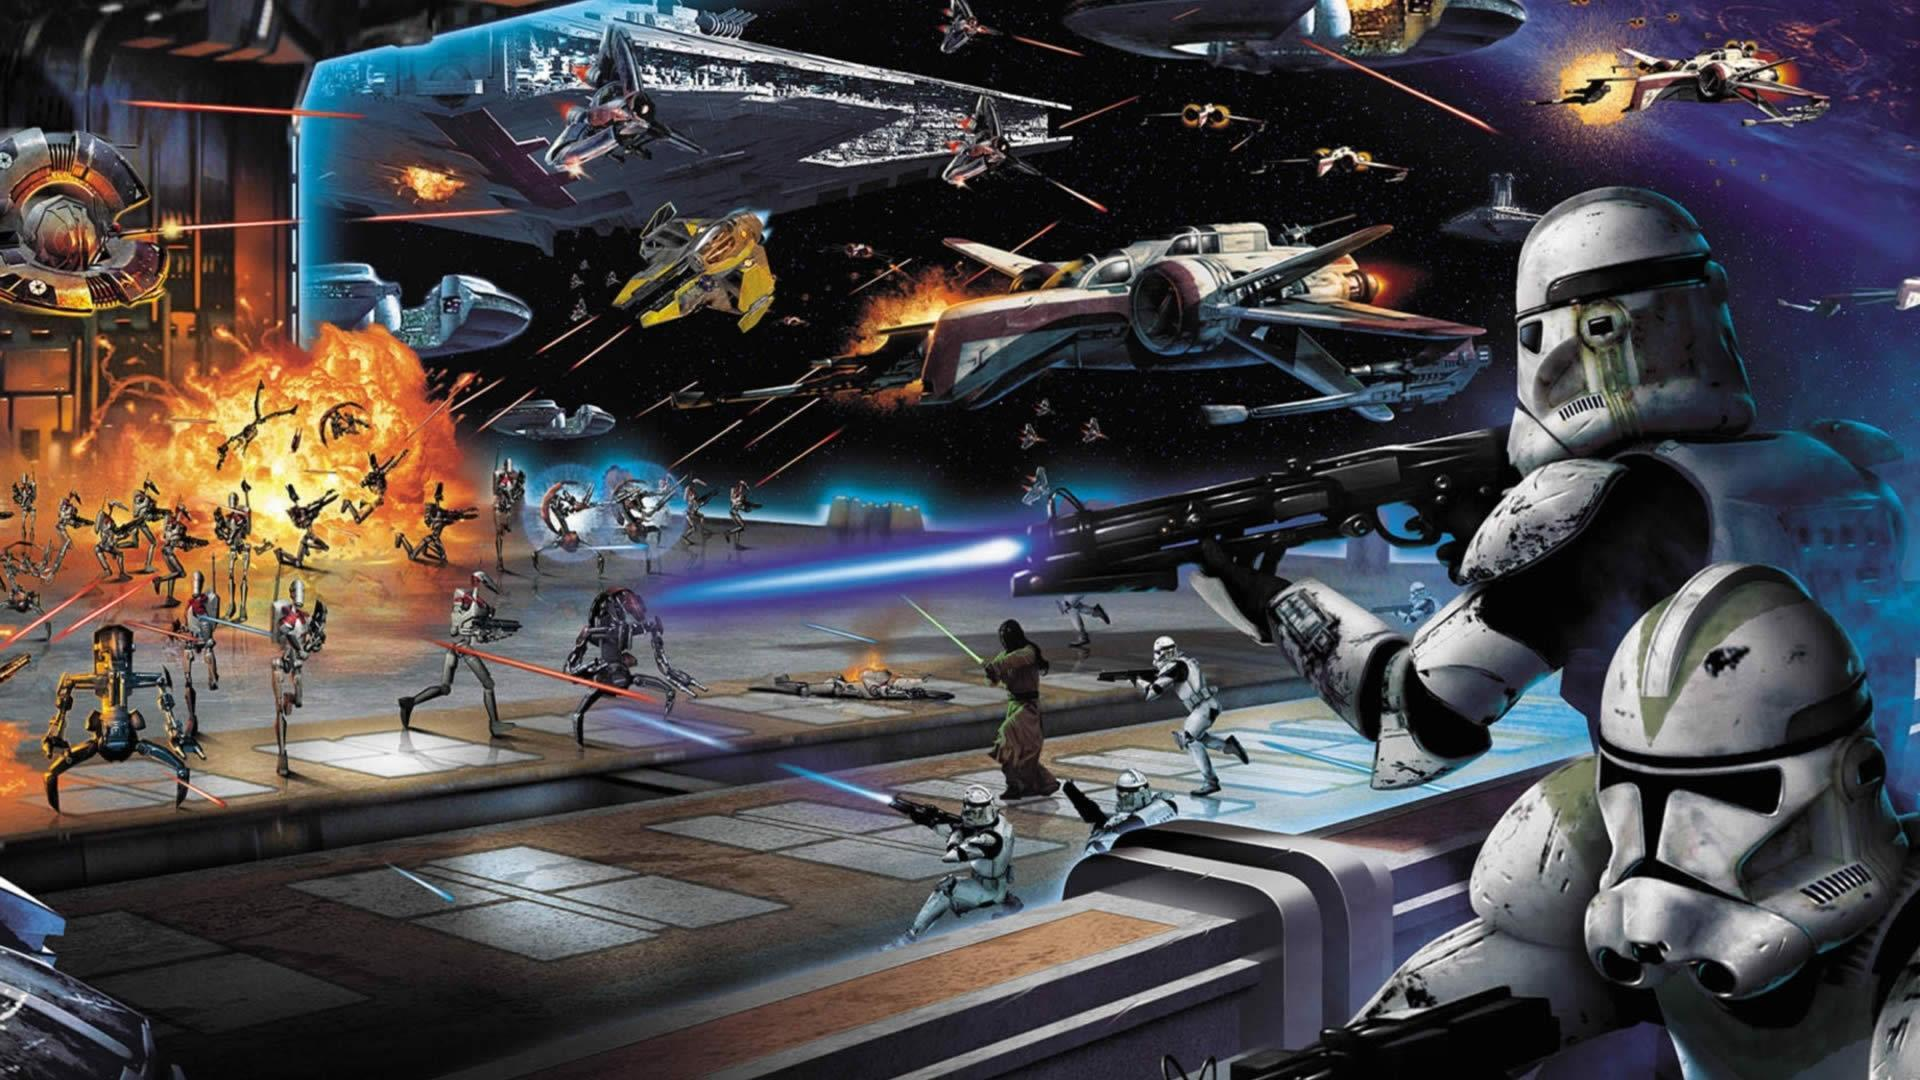 epic star wars wallpapers wallpaper cave